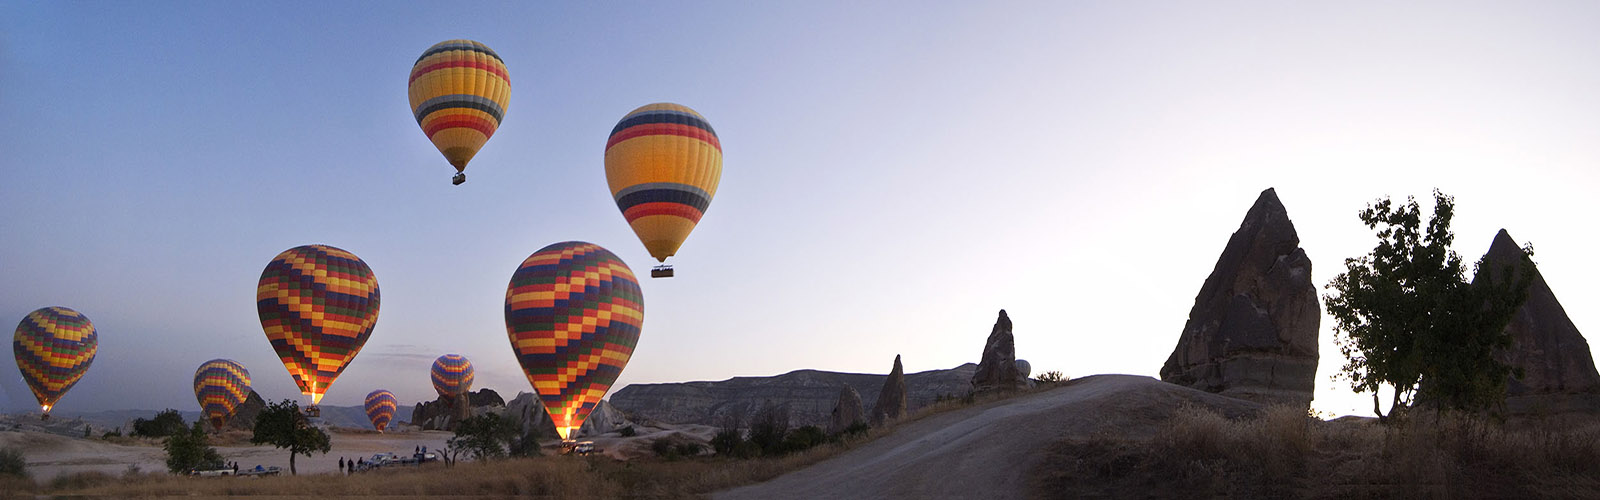 PhotoFly Travel Club | Upcoming Trips Page 4 Turkey Balloons1600 | PhotoFly Travel Club